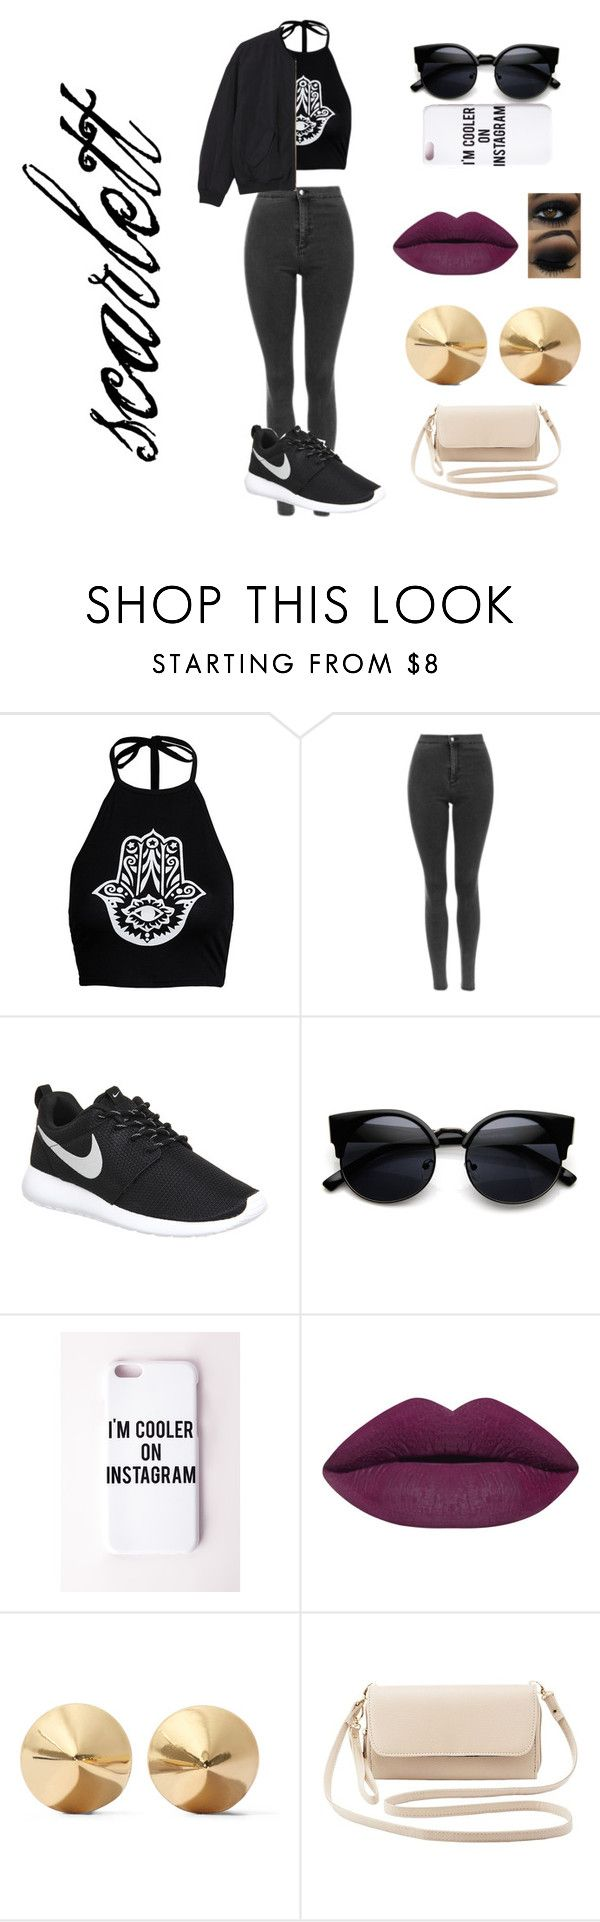 """wattpad story outfit"" by lauraederveen on Polyvore featuring mode, NIKE, Missguided, Eddie Borgo, Charlotte Russe, Monki, women's clothing, women, female en woman"